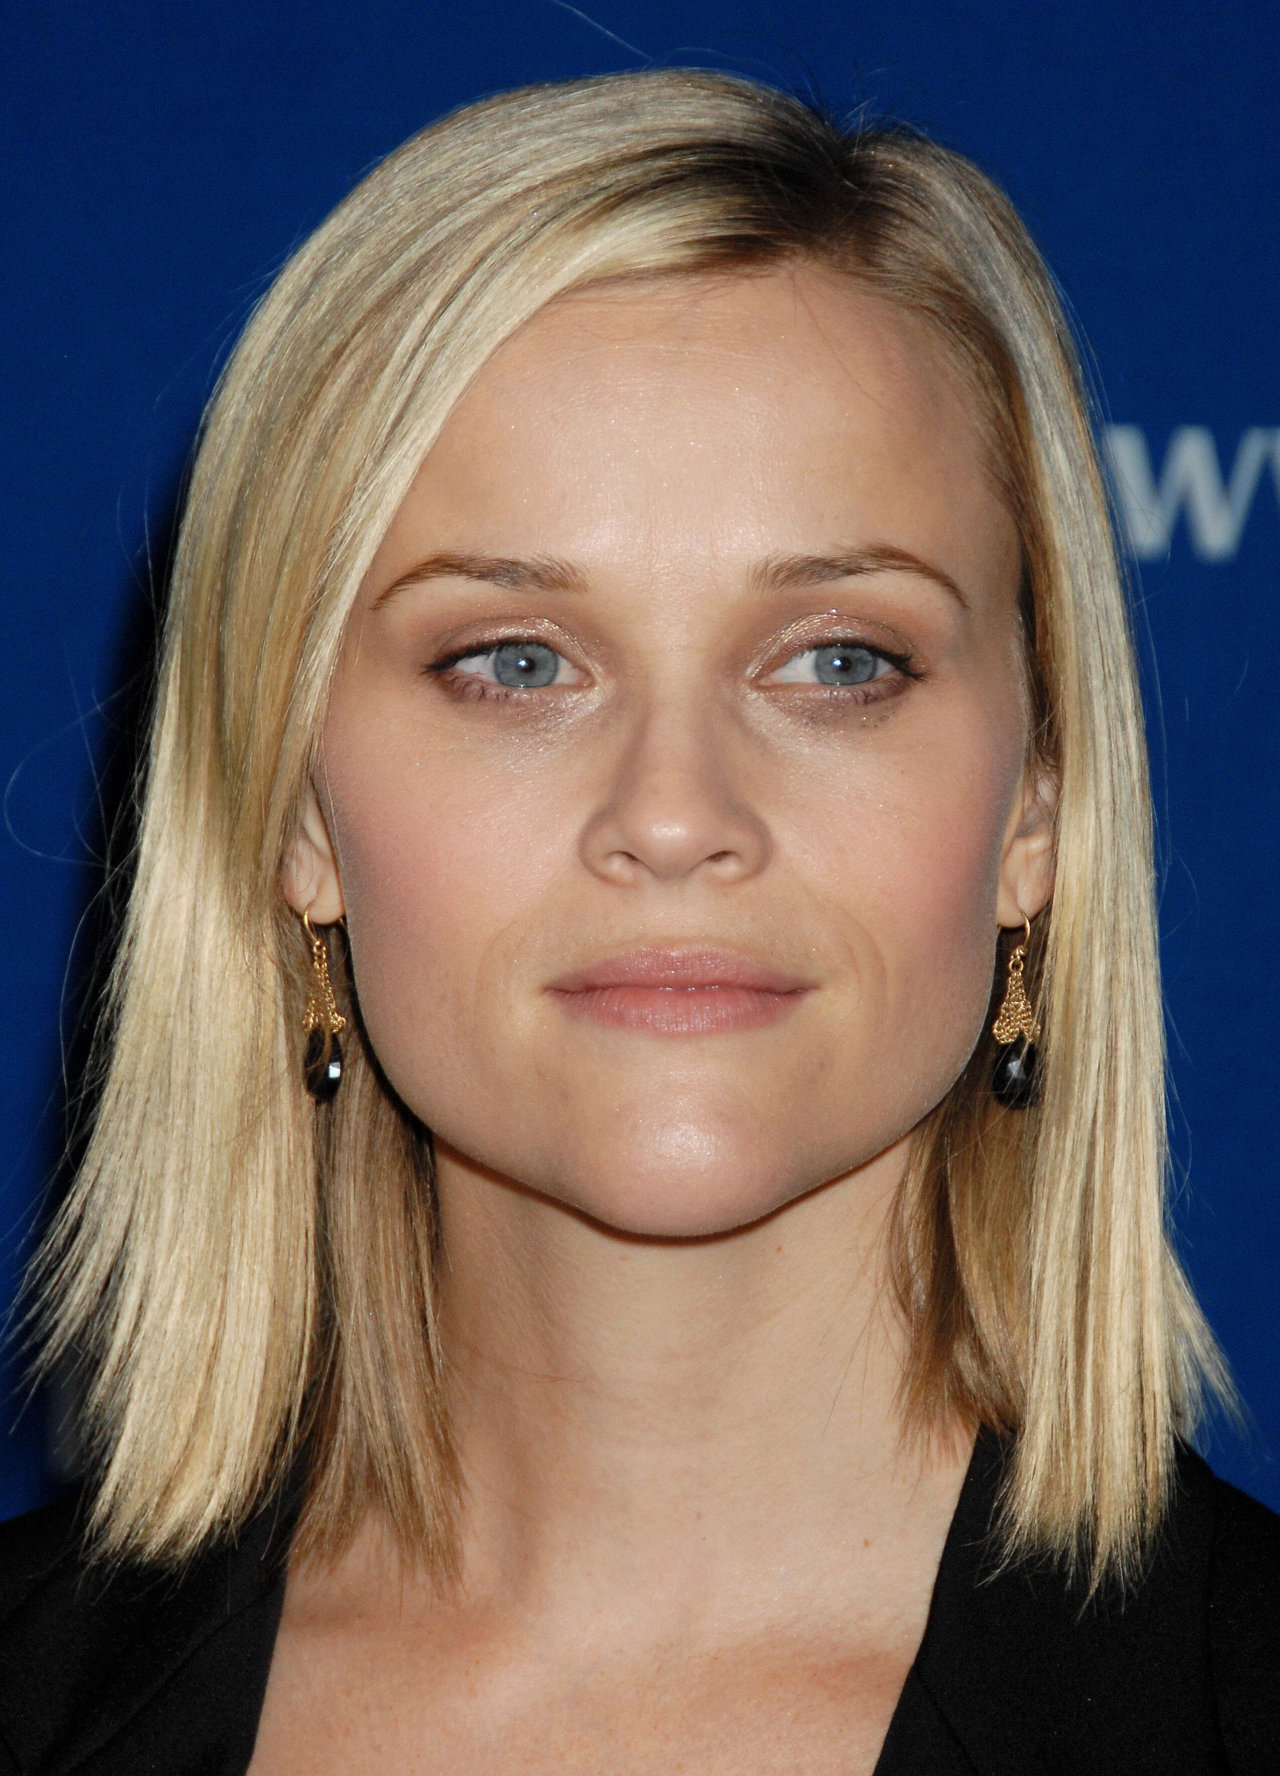 Reese Witherspoon Leaked | Hot Celebs Home